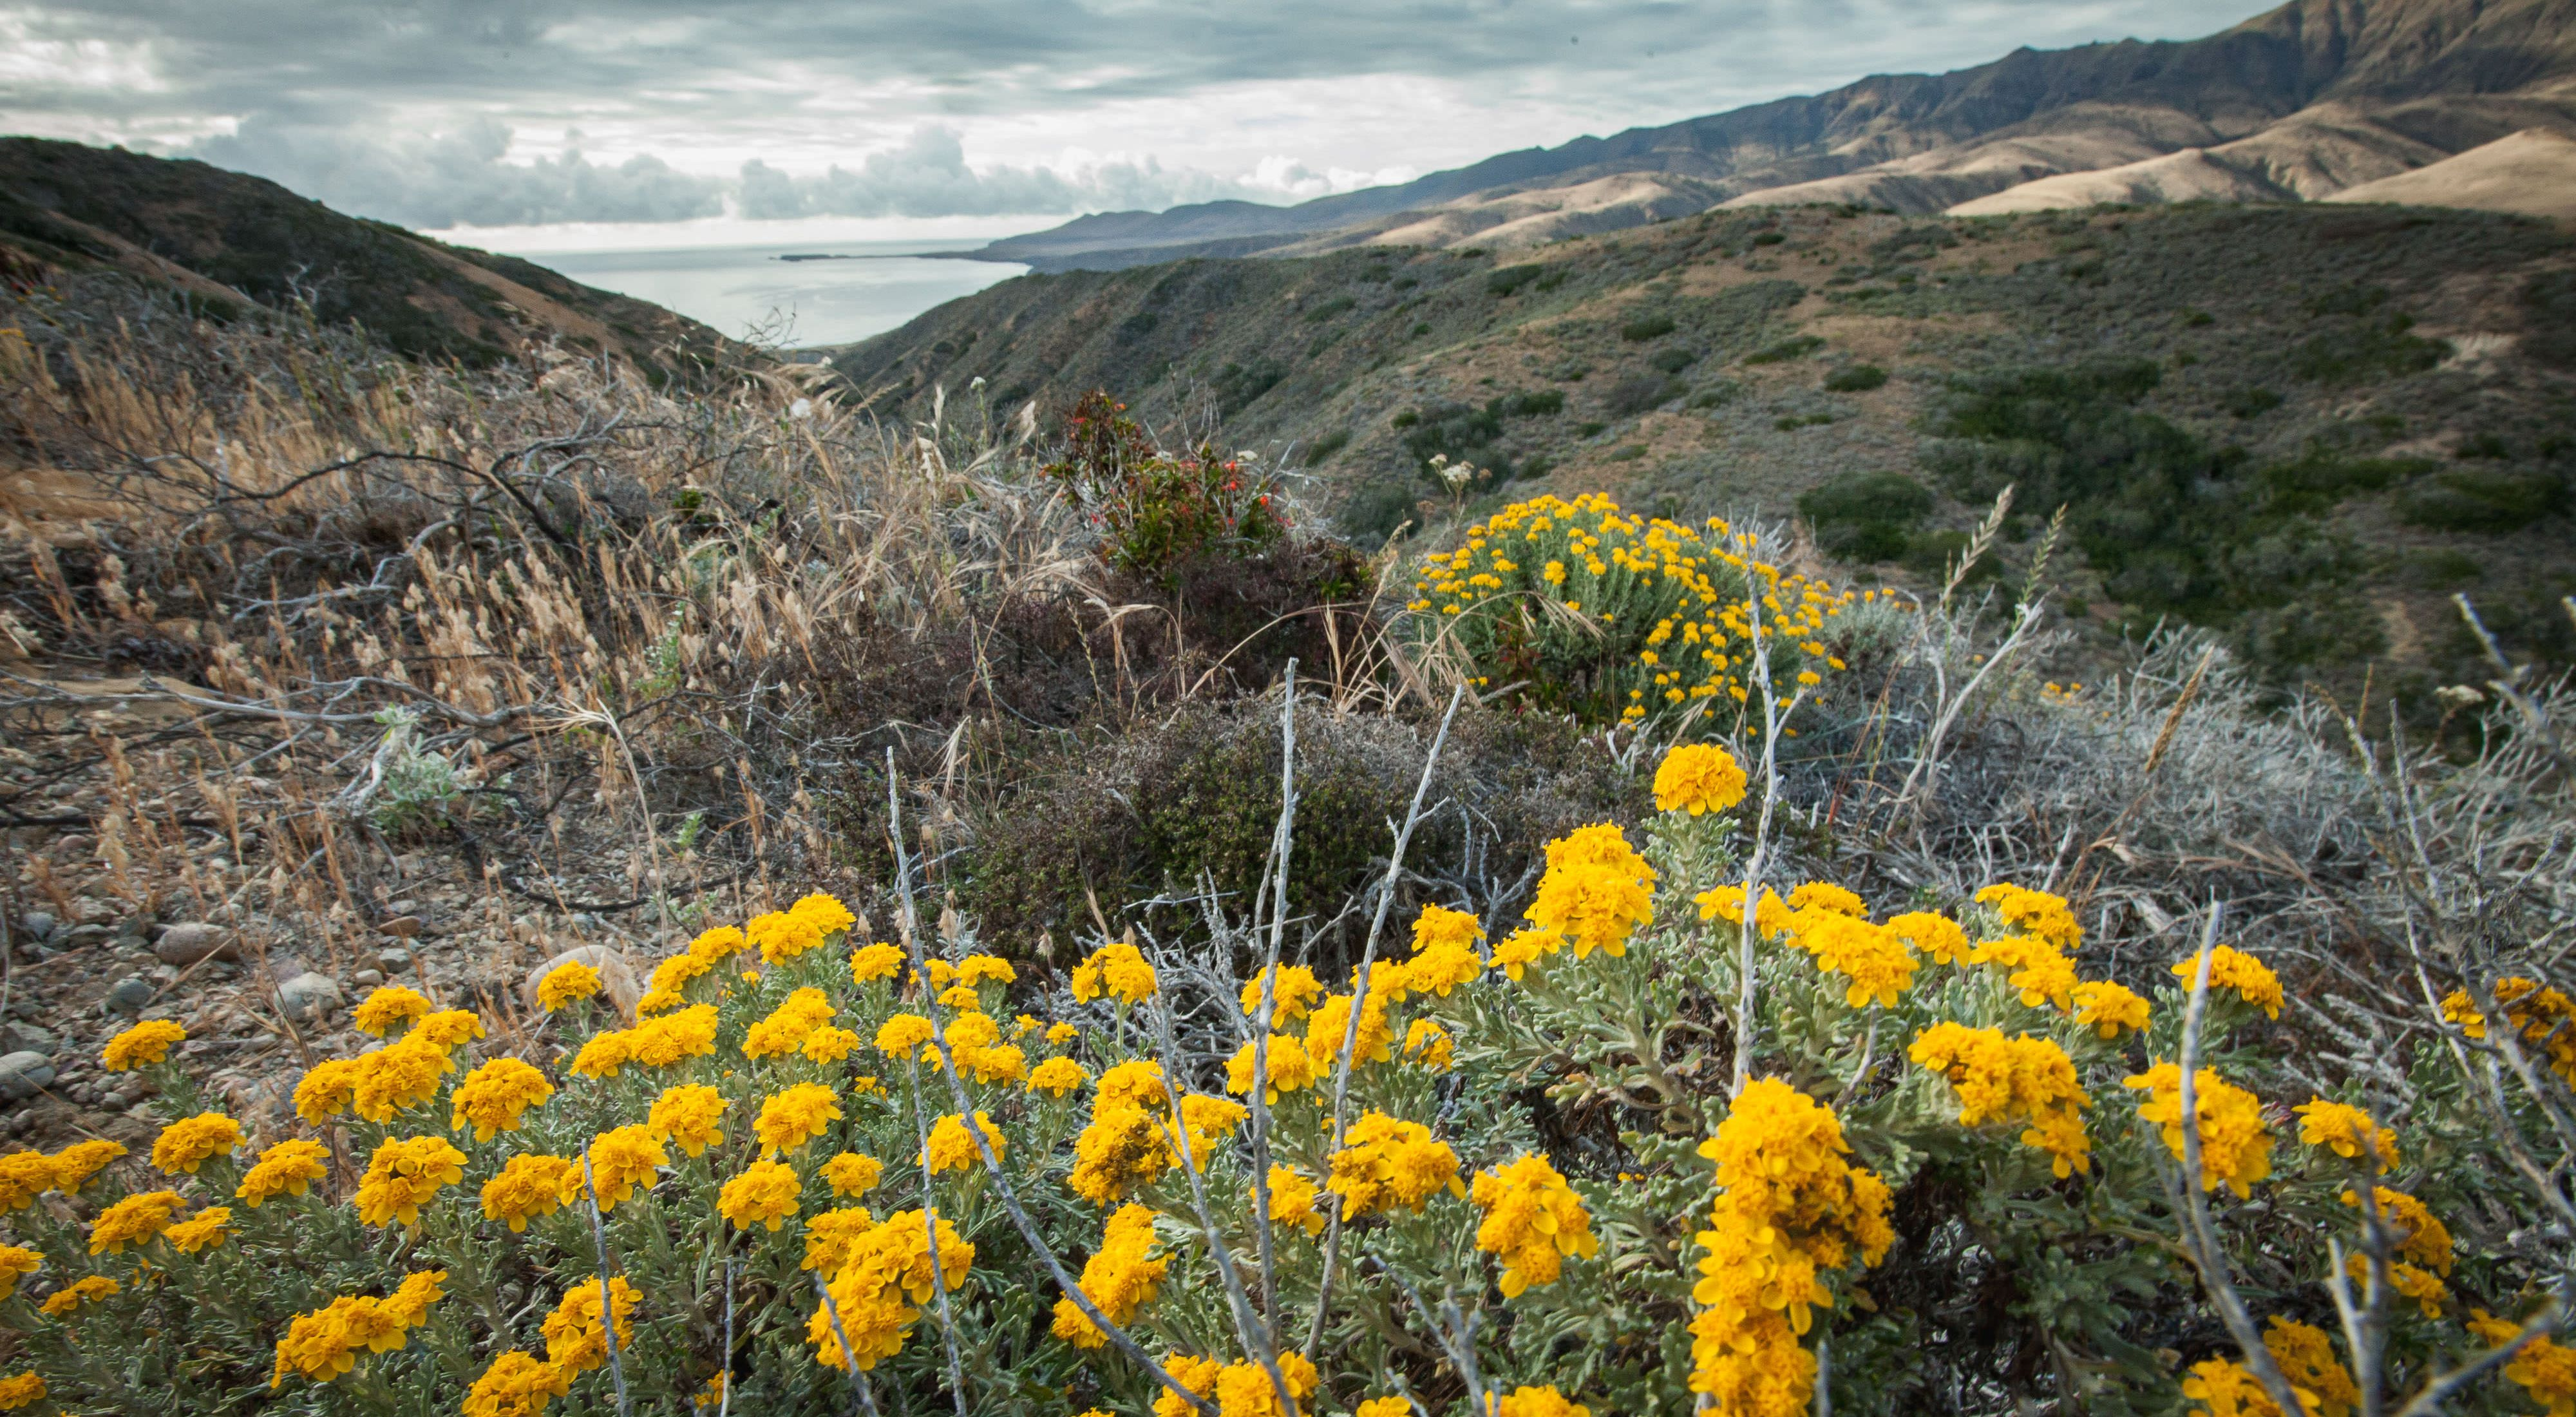 Twenty-five miles off the coast of southern California lies Santa Cruz Island, the largest of California's eight Channel Islands.